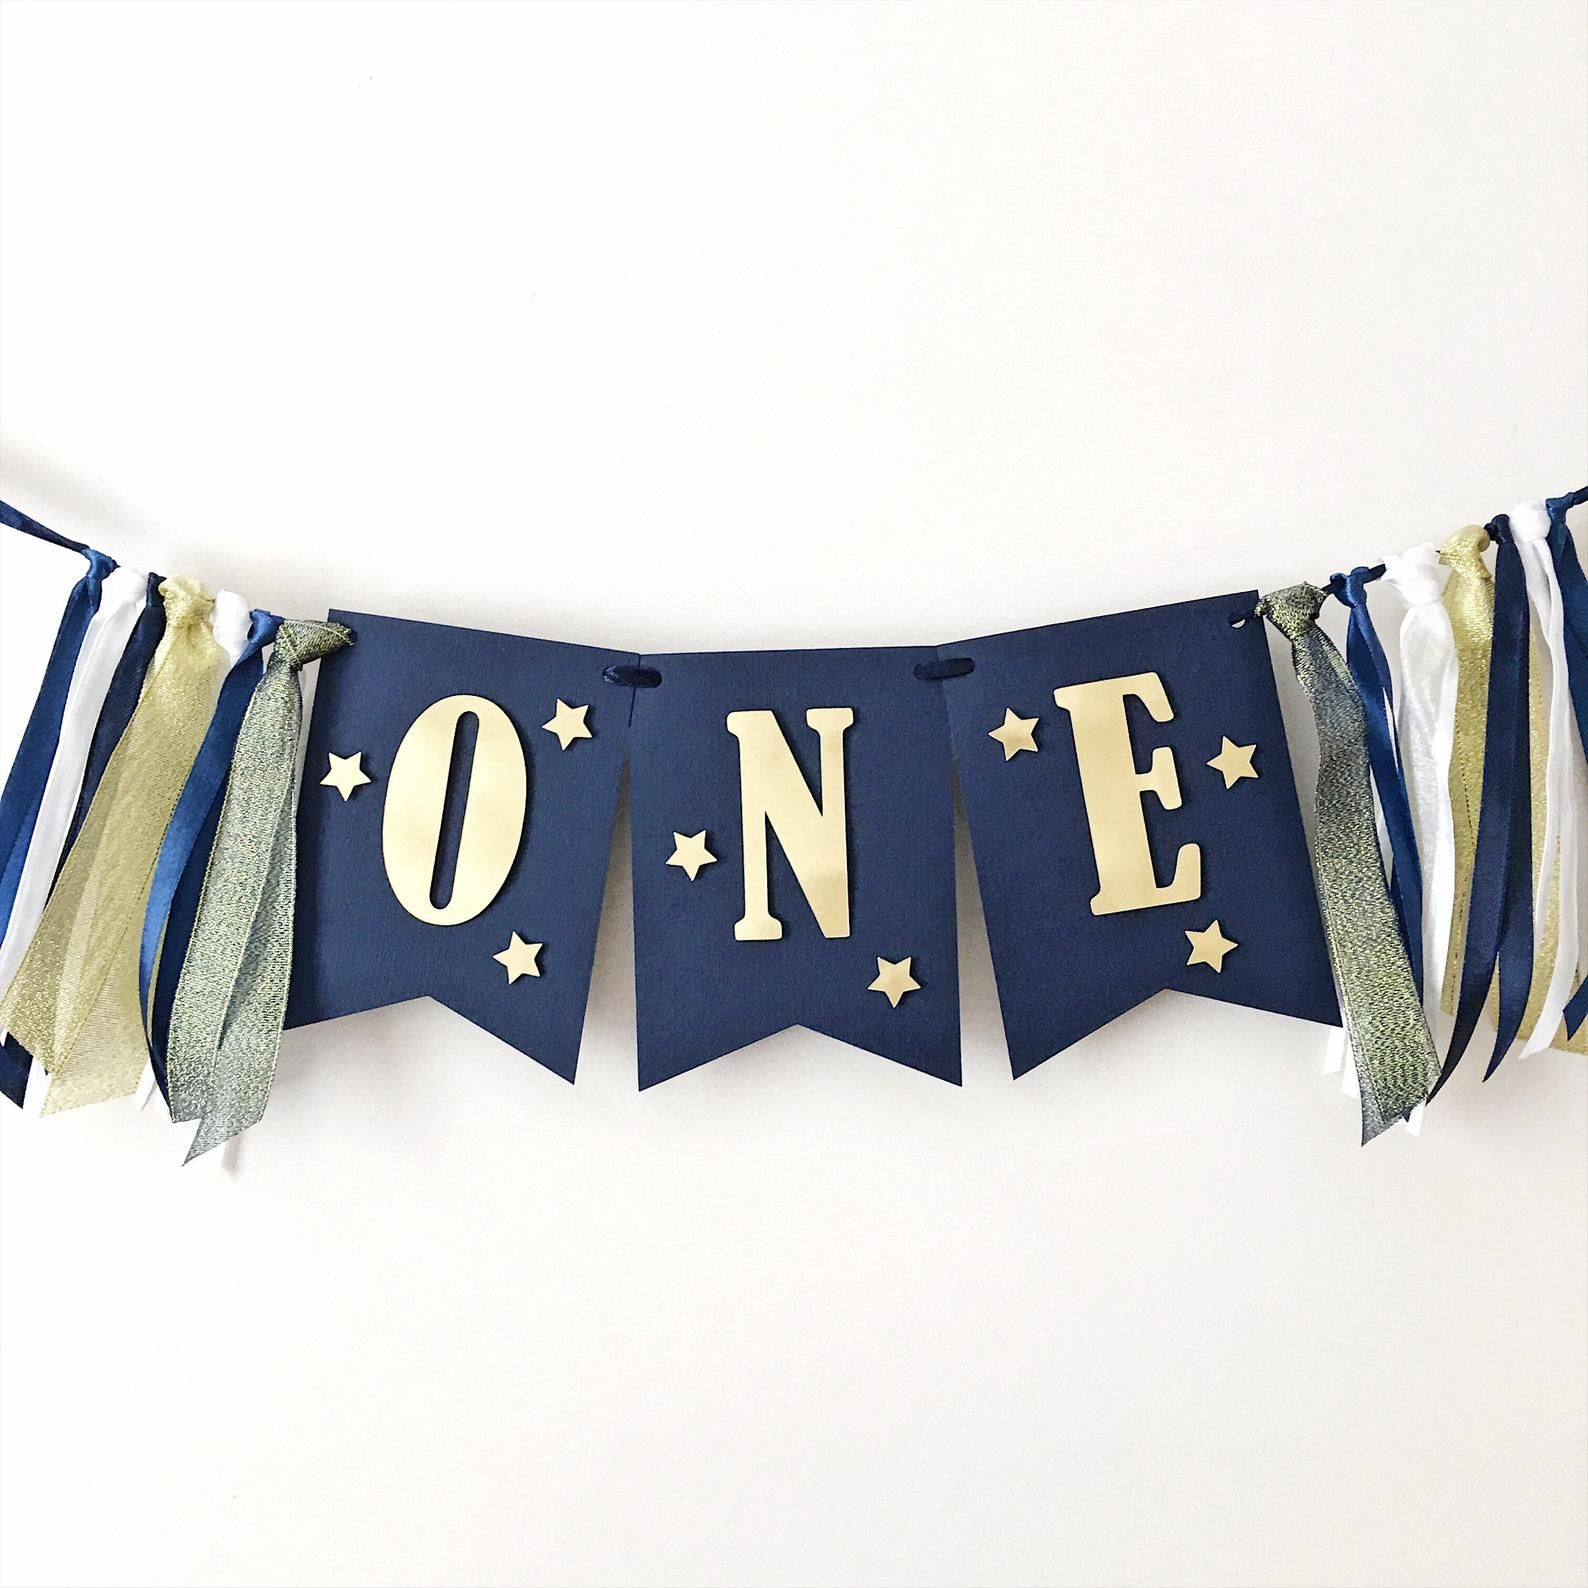 Twinkle Twinkle Little Star One High Chair Banner Navy Blue Gold Little Star Boy 1st Birthday Decorations Sign Love You Moon and Back MS003